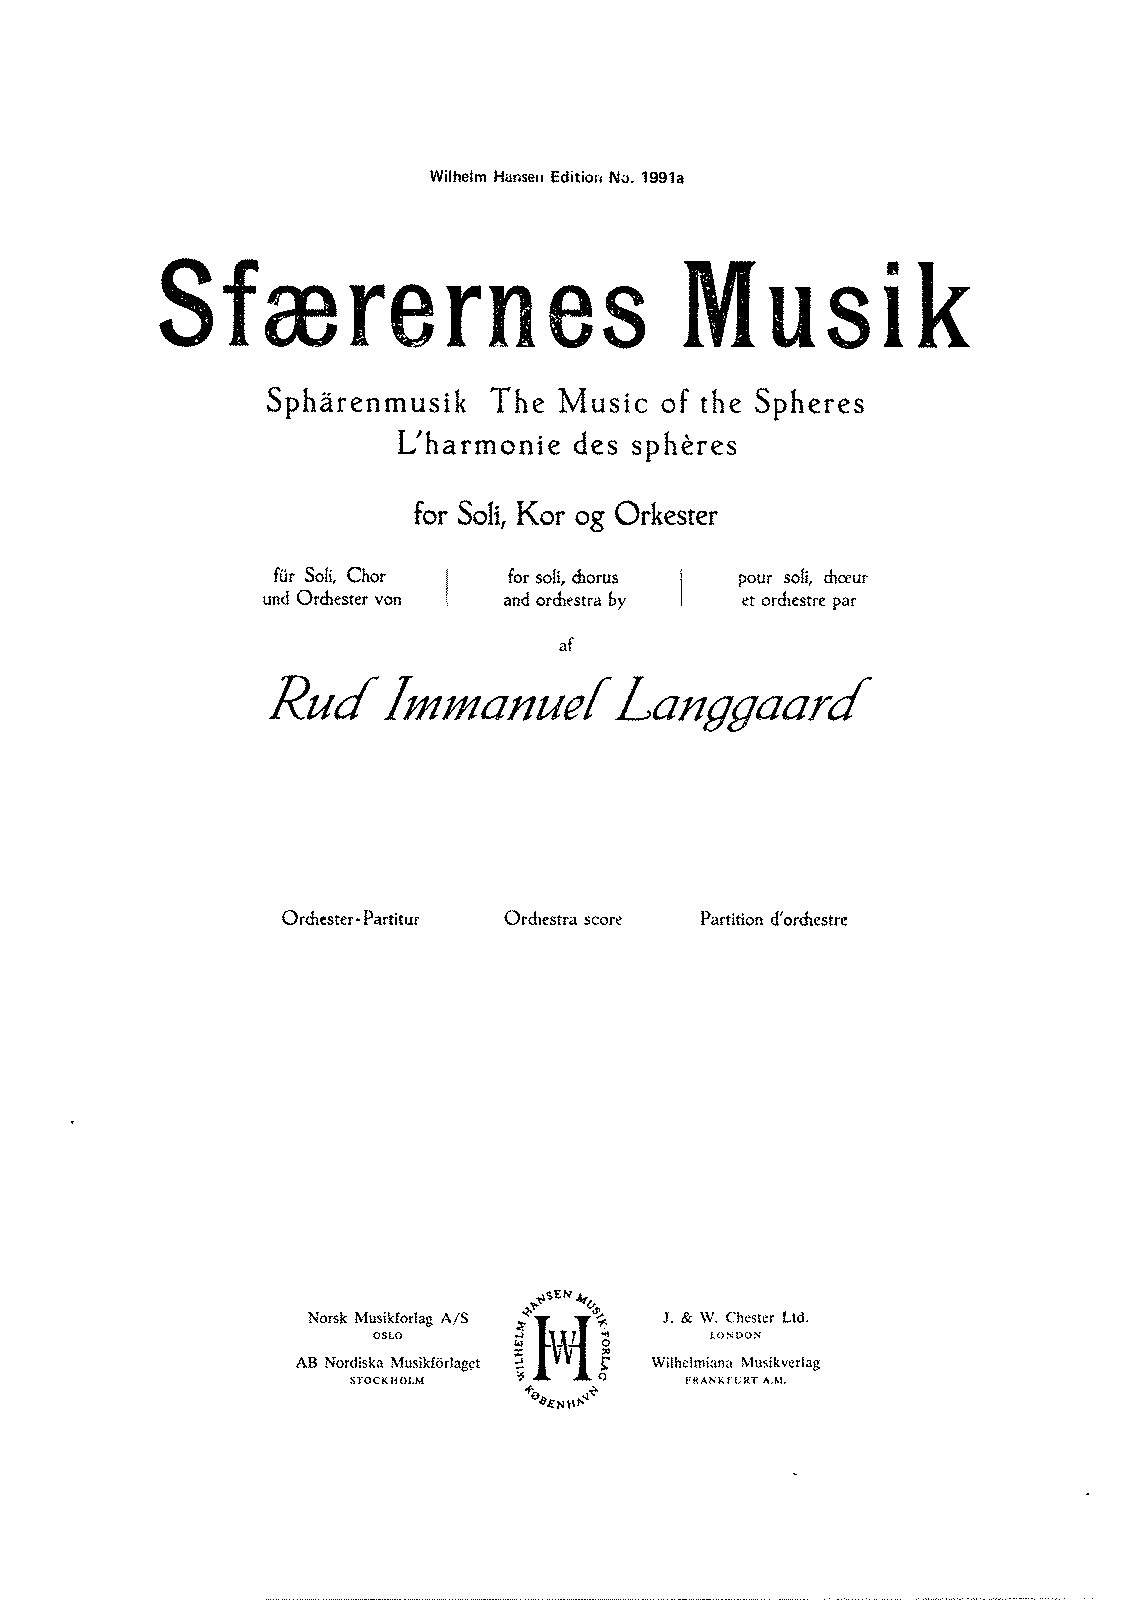 PMLP58067-Langgaard - The Music of the Spheres.pdf